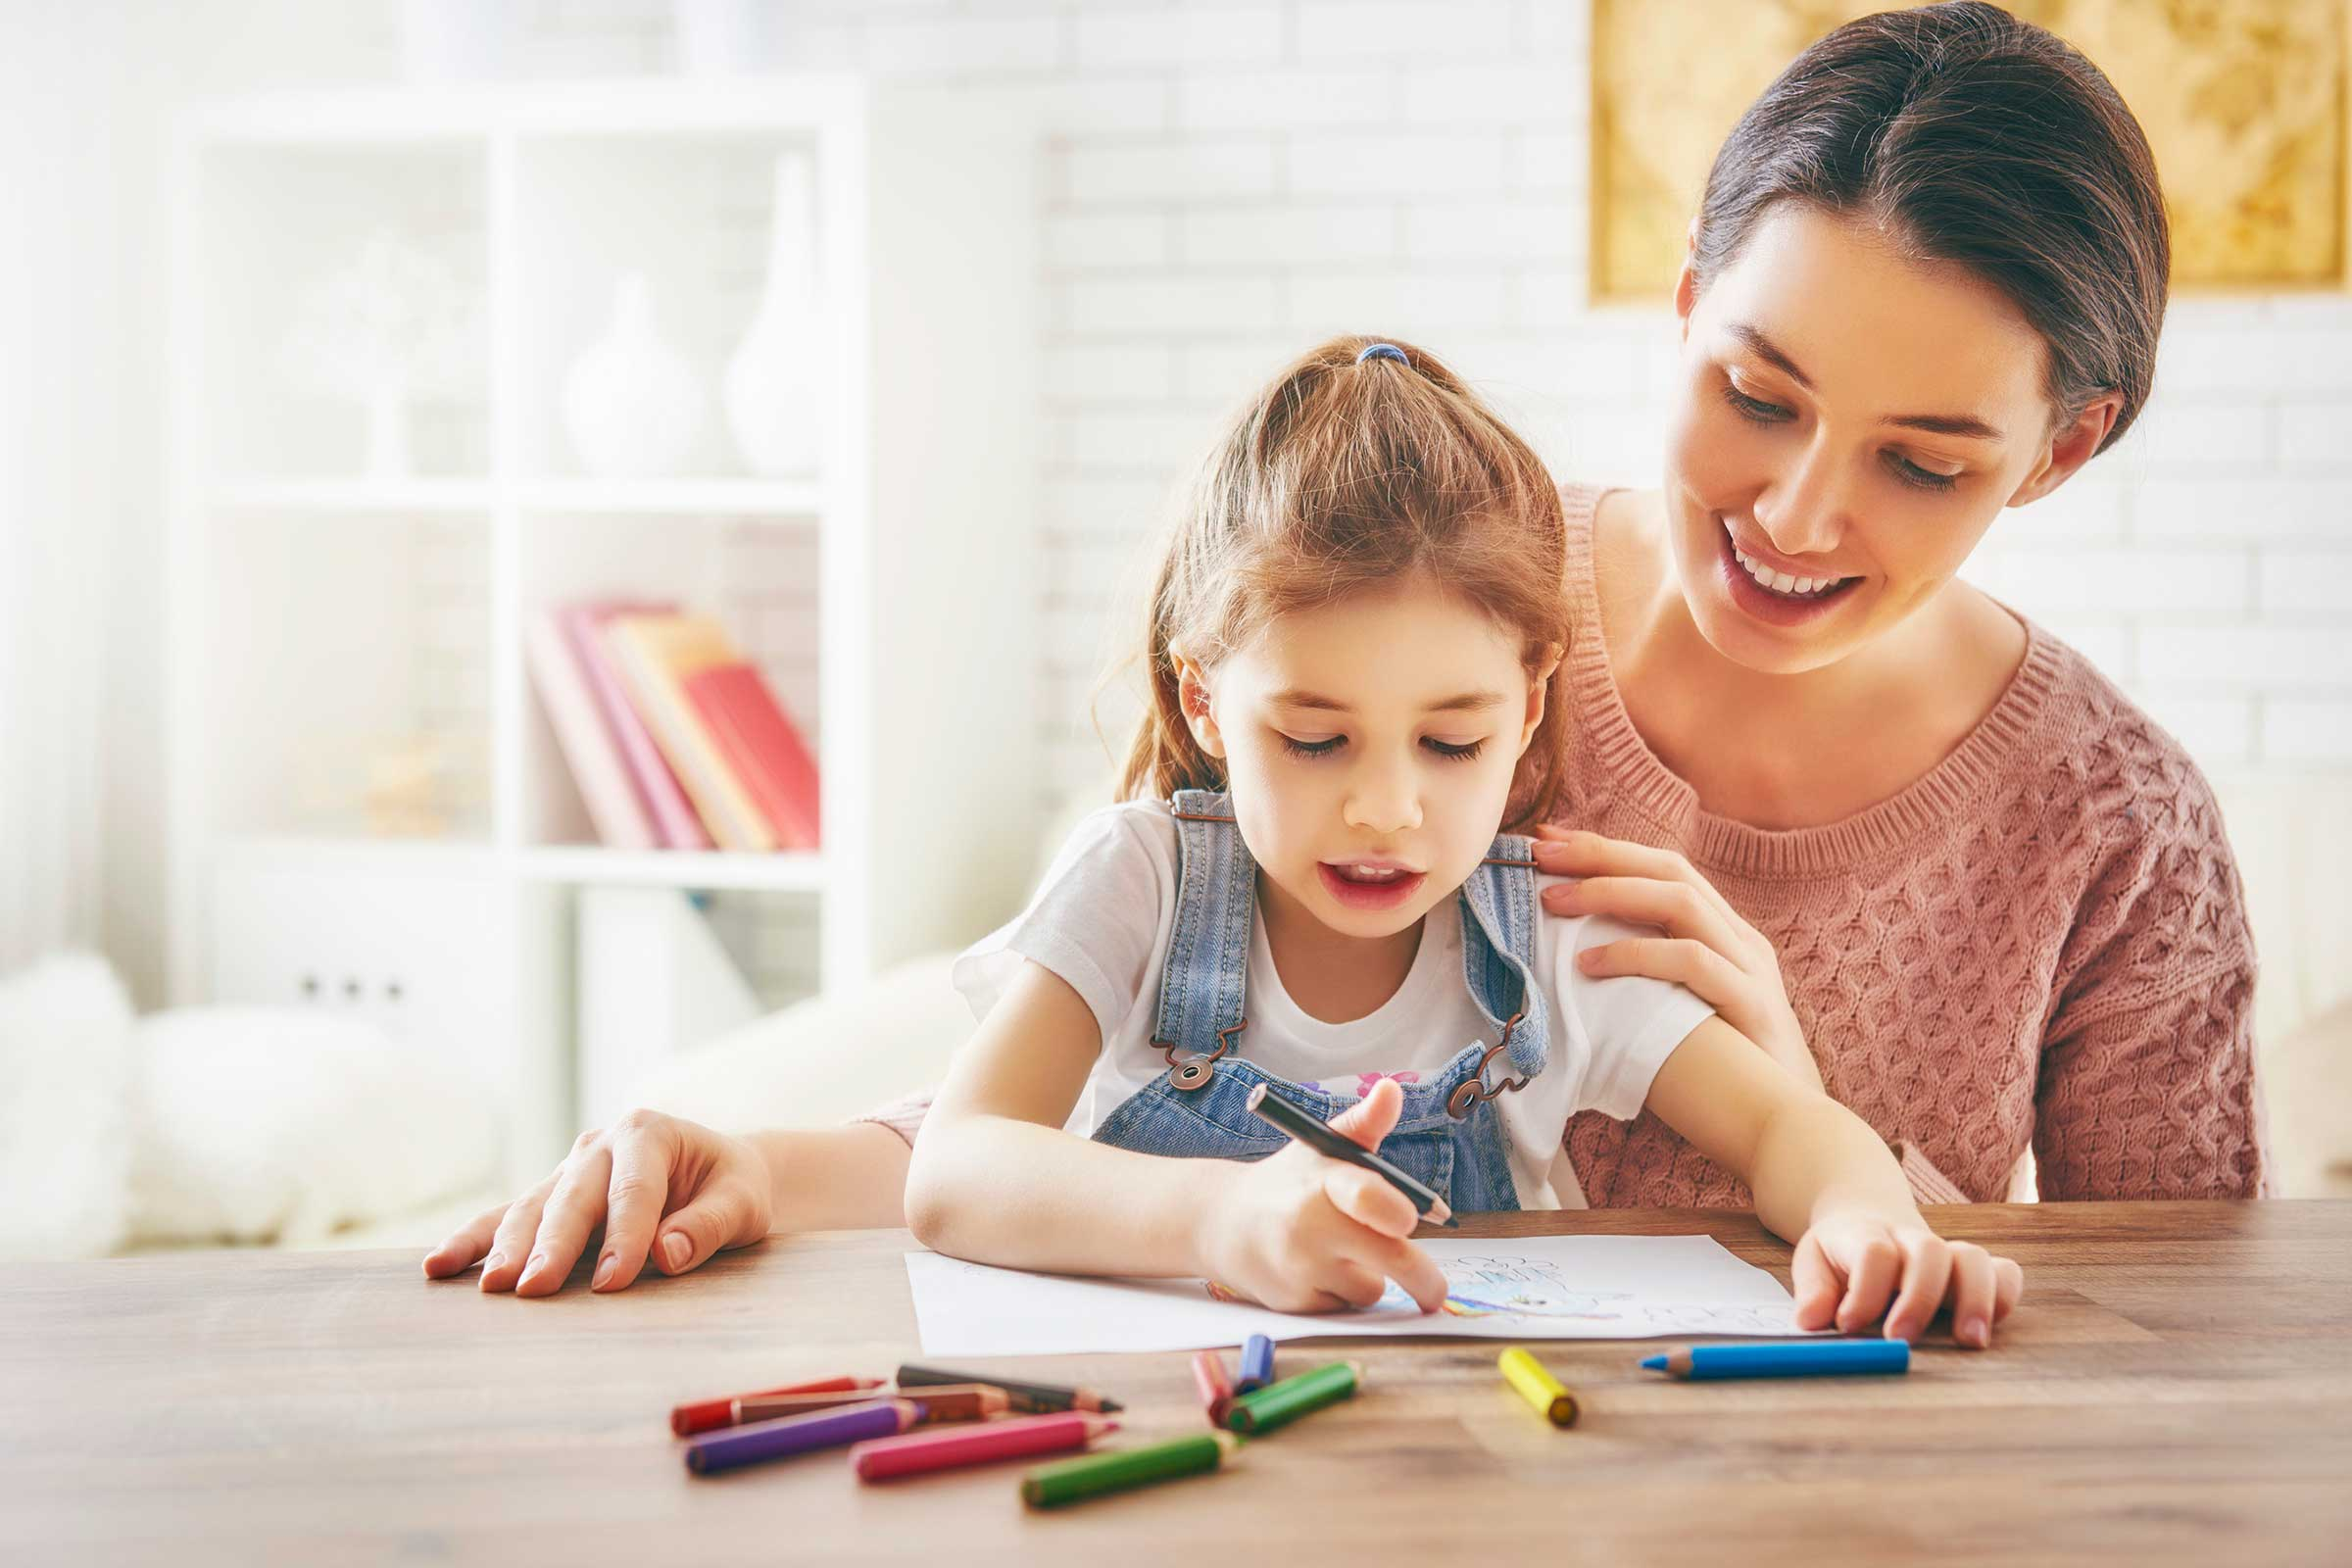 Building Self Esteem - How To Build Up Confidence In Your Child #FrizeMedia